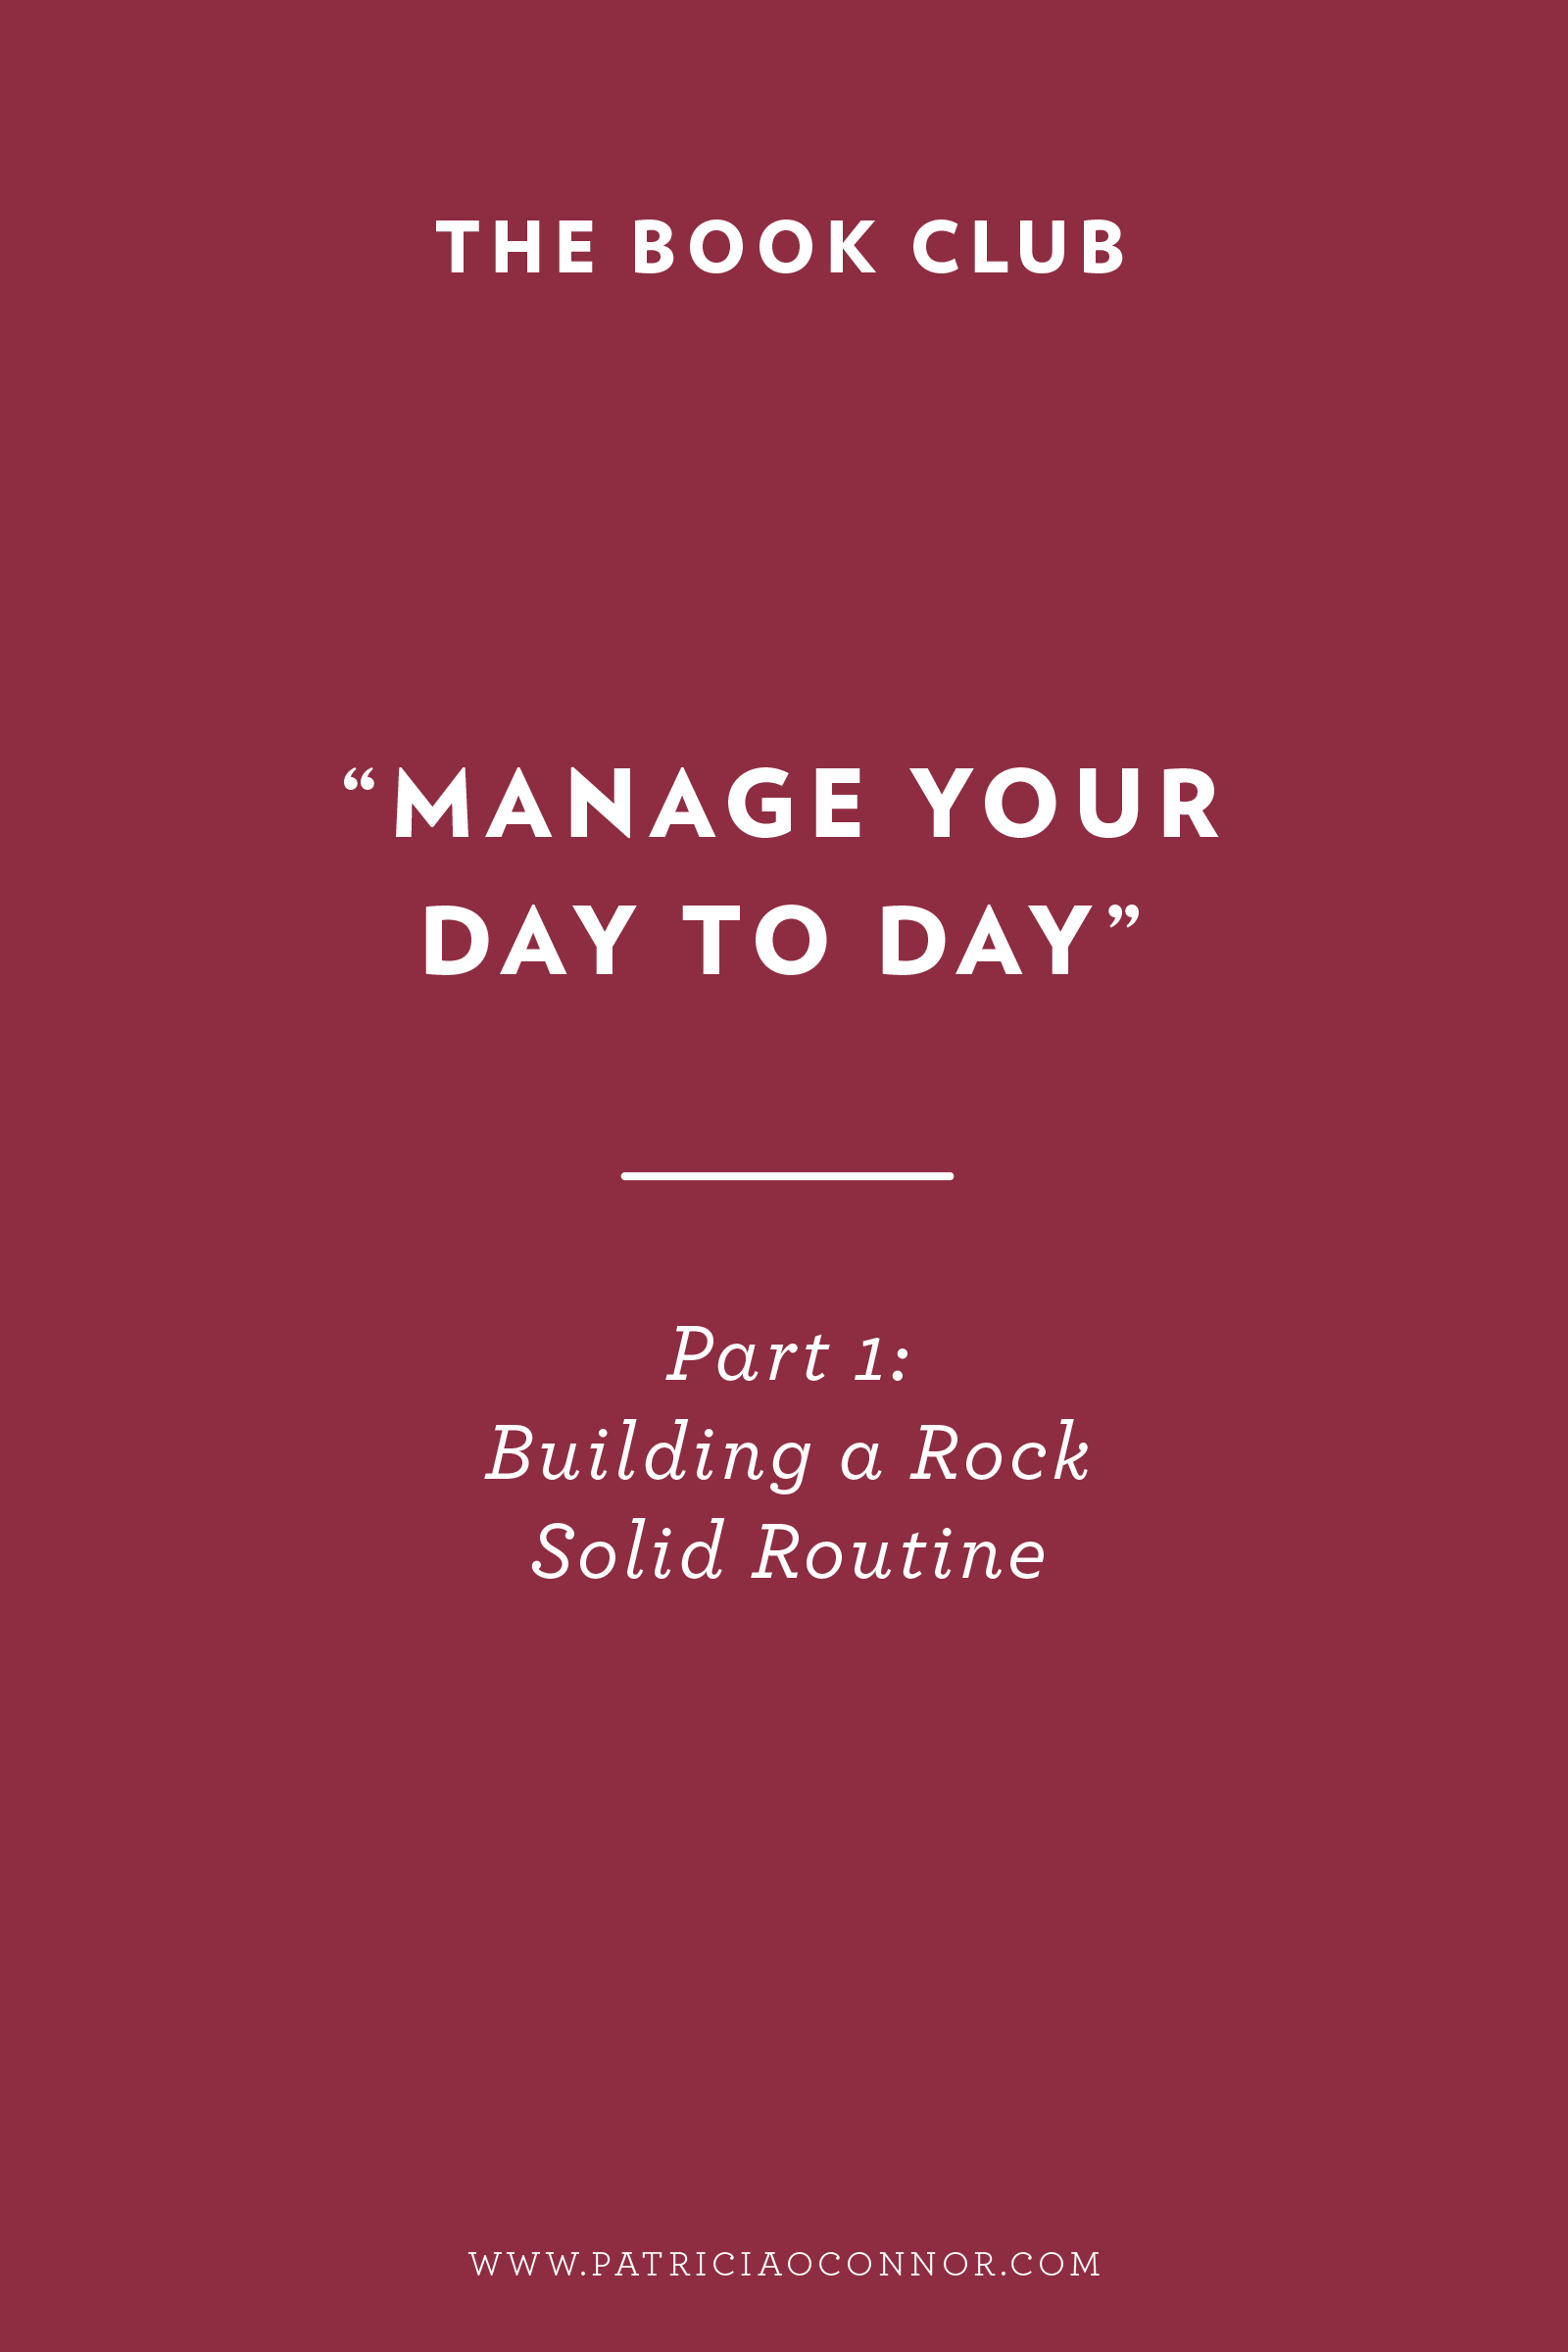 Manage Your Day to Day Part 1